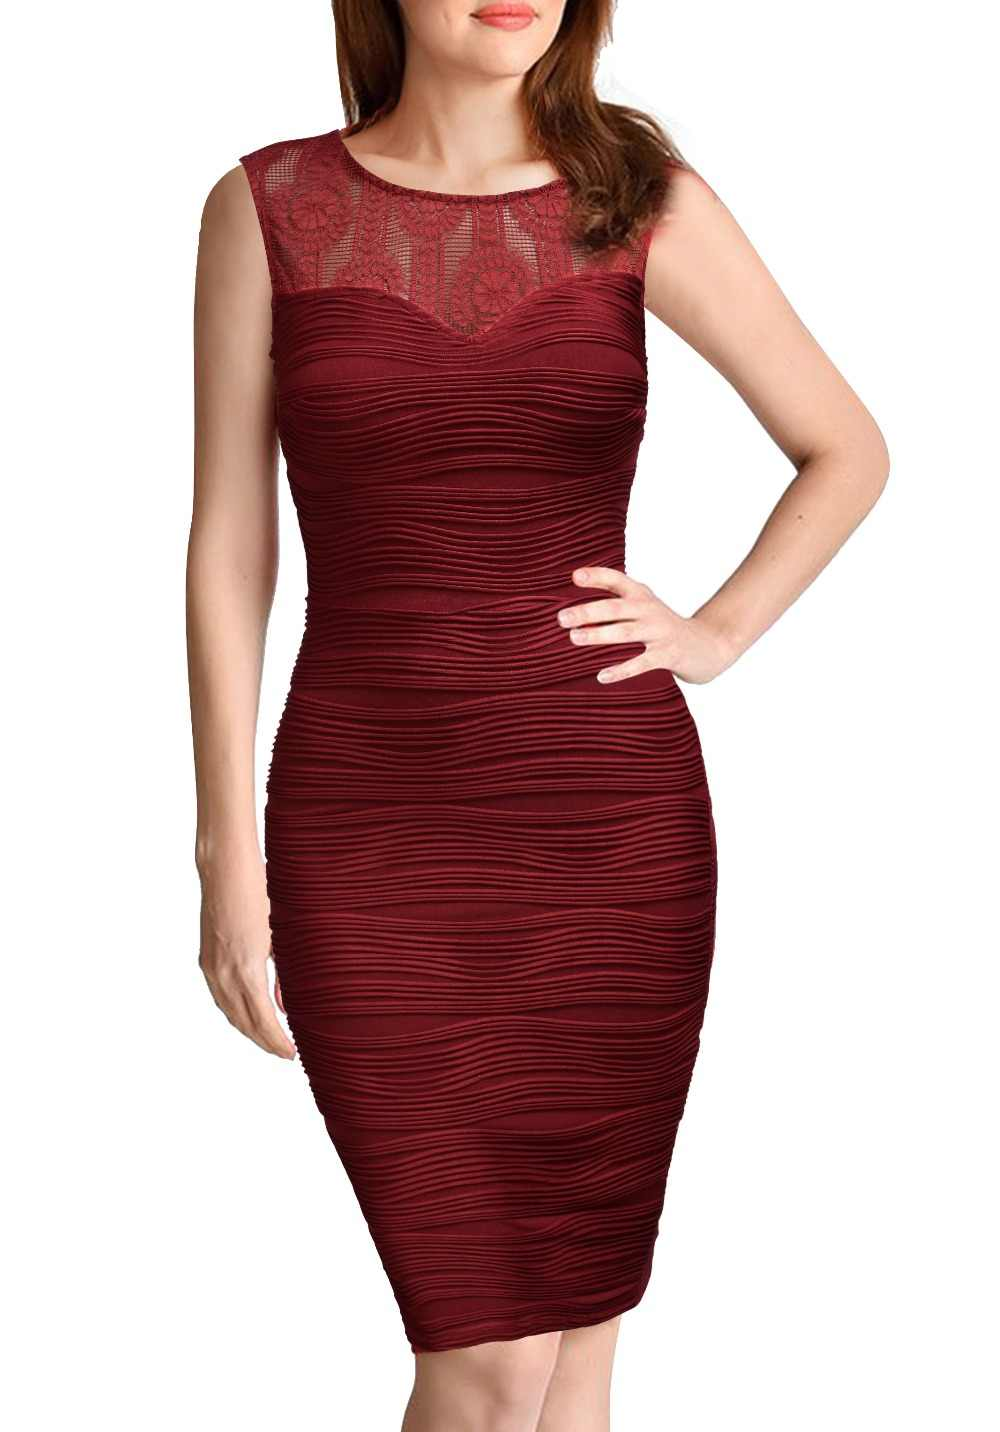 2d12b64846fc6 REPHYLLIS Women Sleeveless Top Lace V Back Sexy Bodycon Cocktail Wear to Work  Party Summer Business